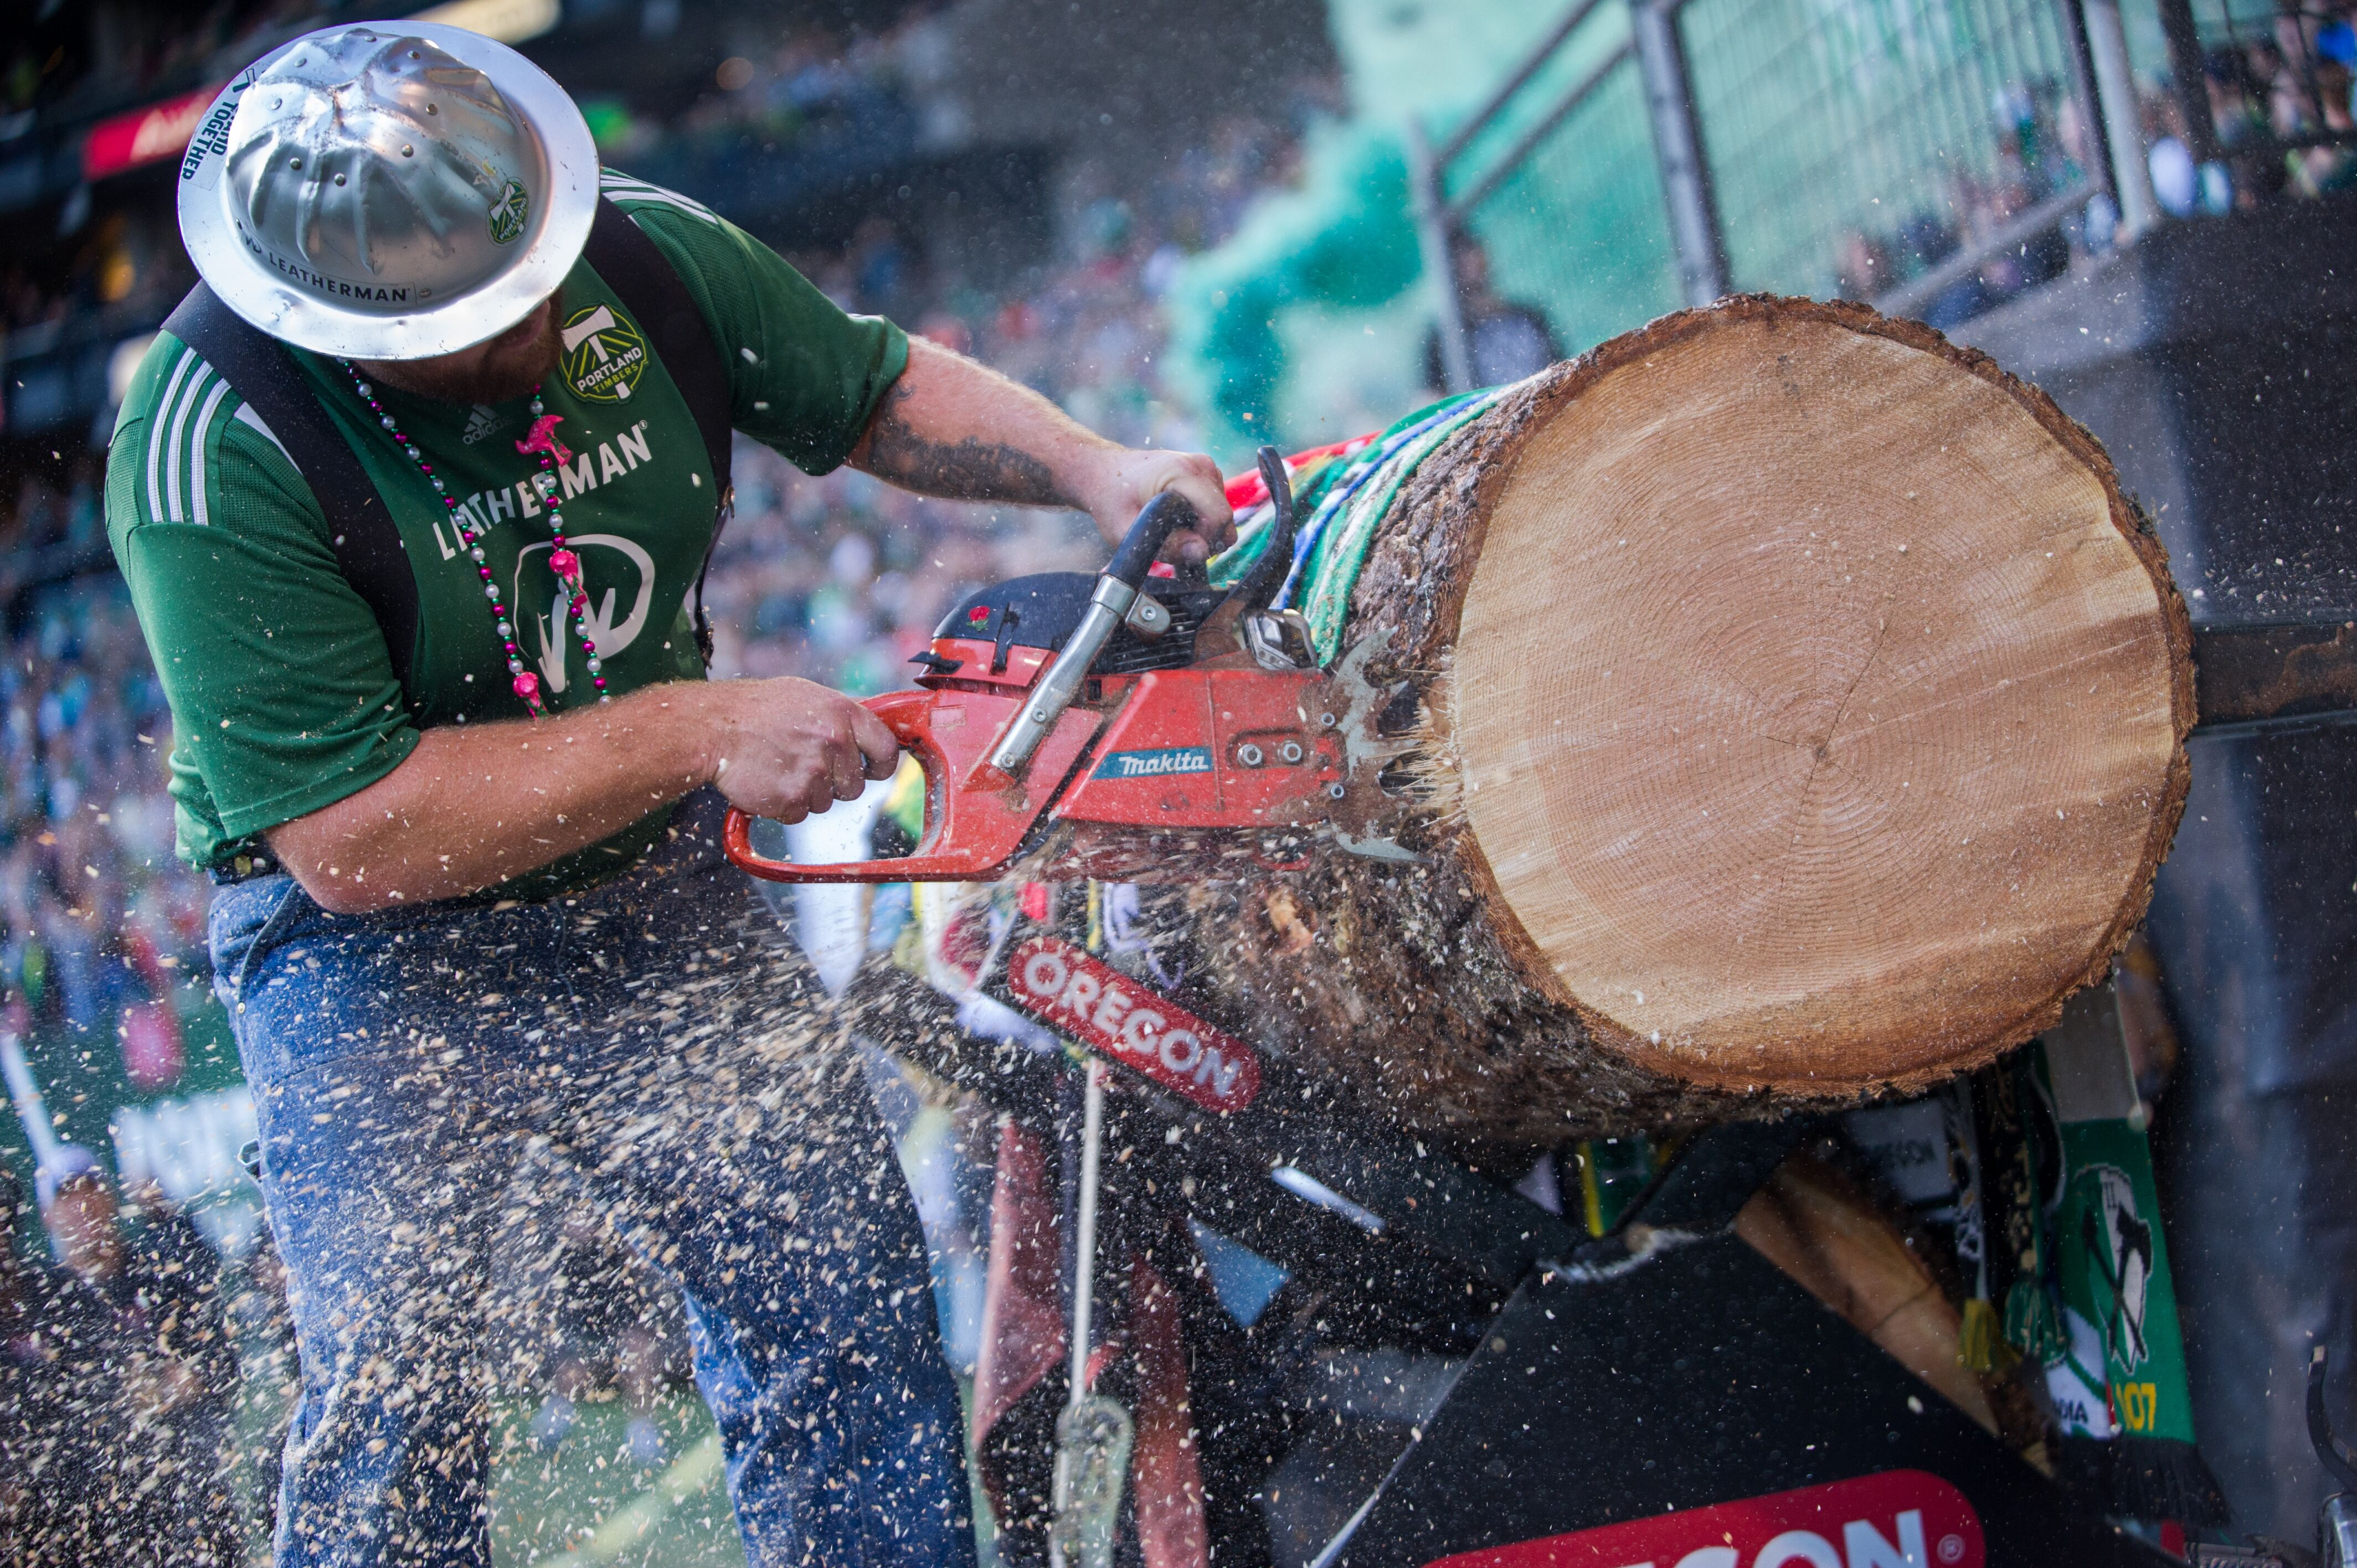 861789522-soccer-oct-15-mls-dc-united-at-portland-timbers.jpg